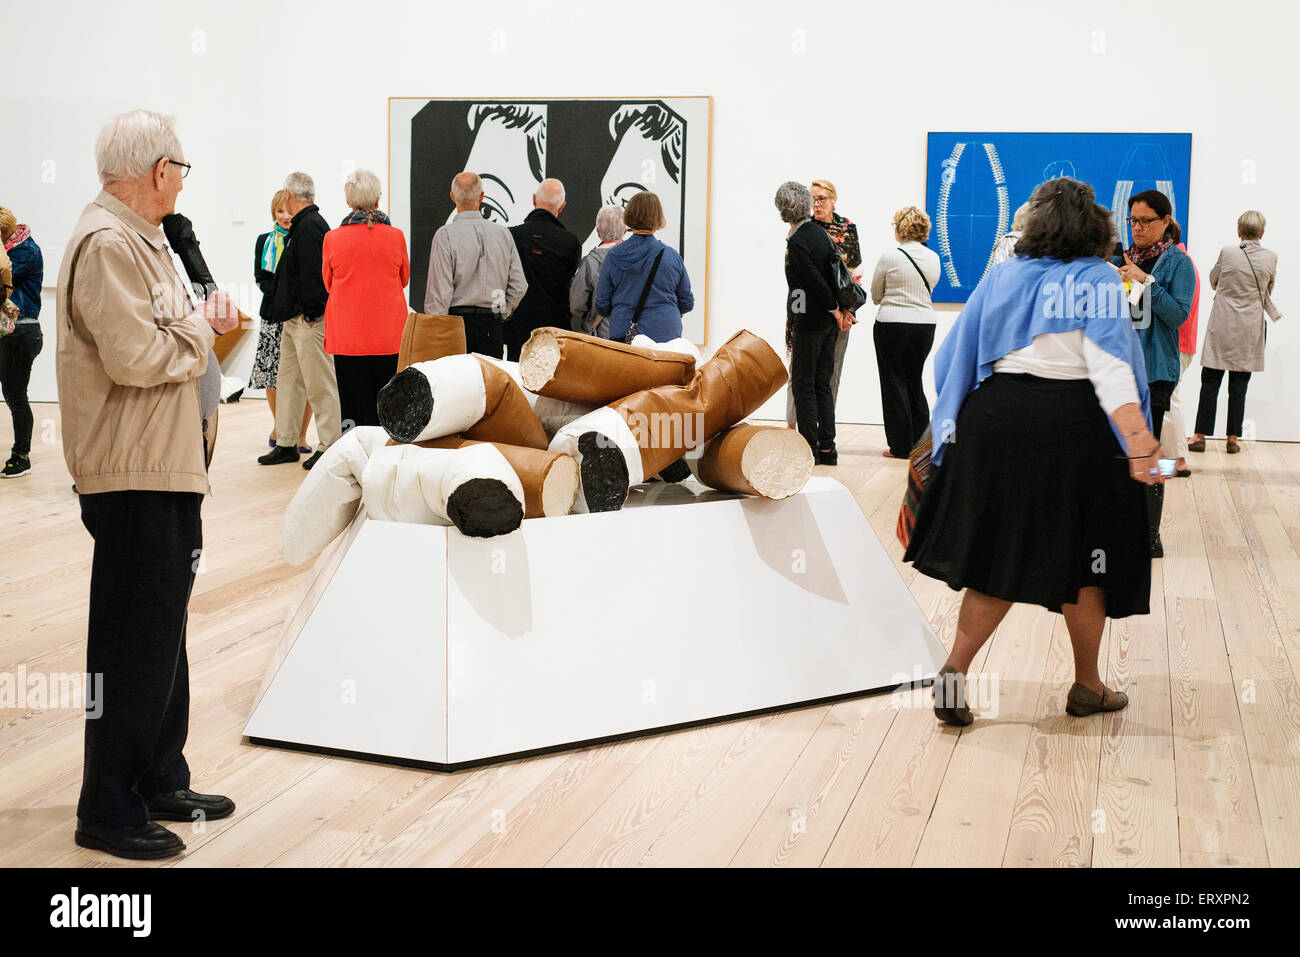 A visitor checking out the Claes Oldenburg installation 'Giant Fagends' in the new Whitney Museum in lower - Stock Image